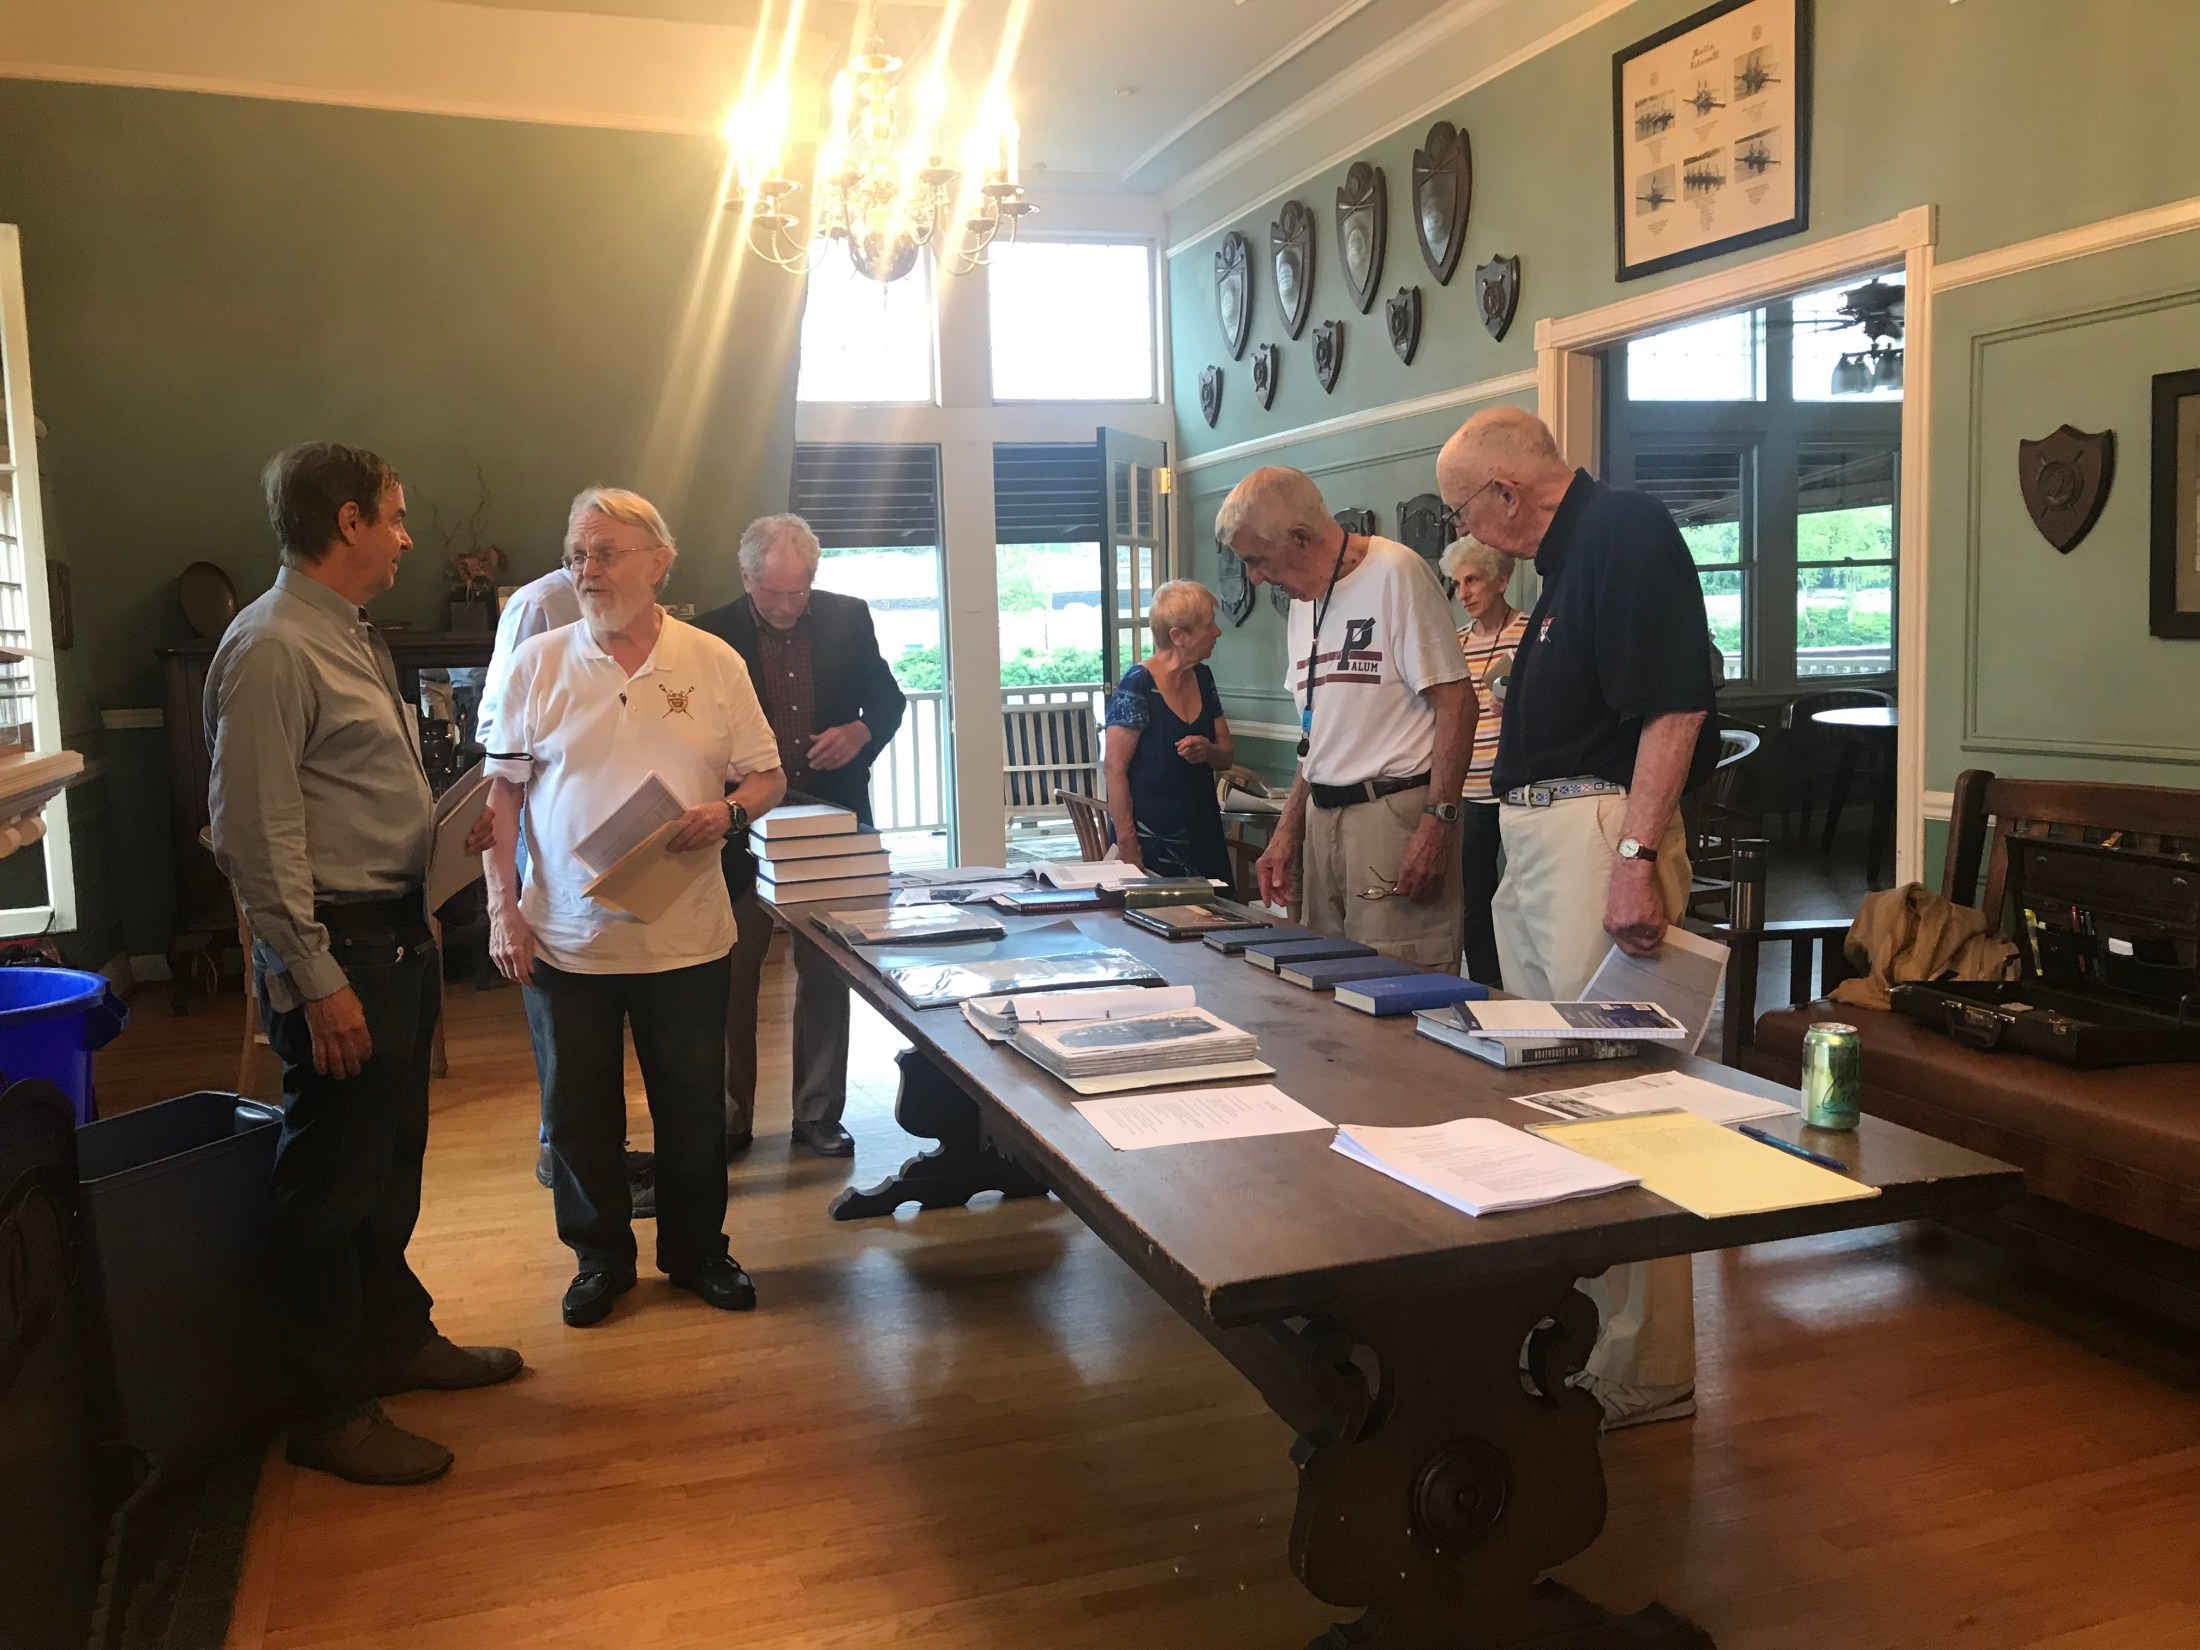 Boathouse Row history buffs eye documents at the Malta Boat Club